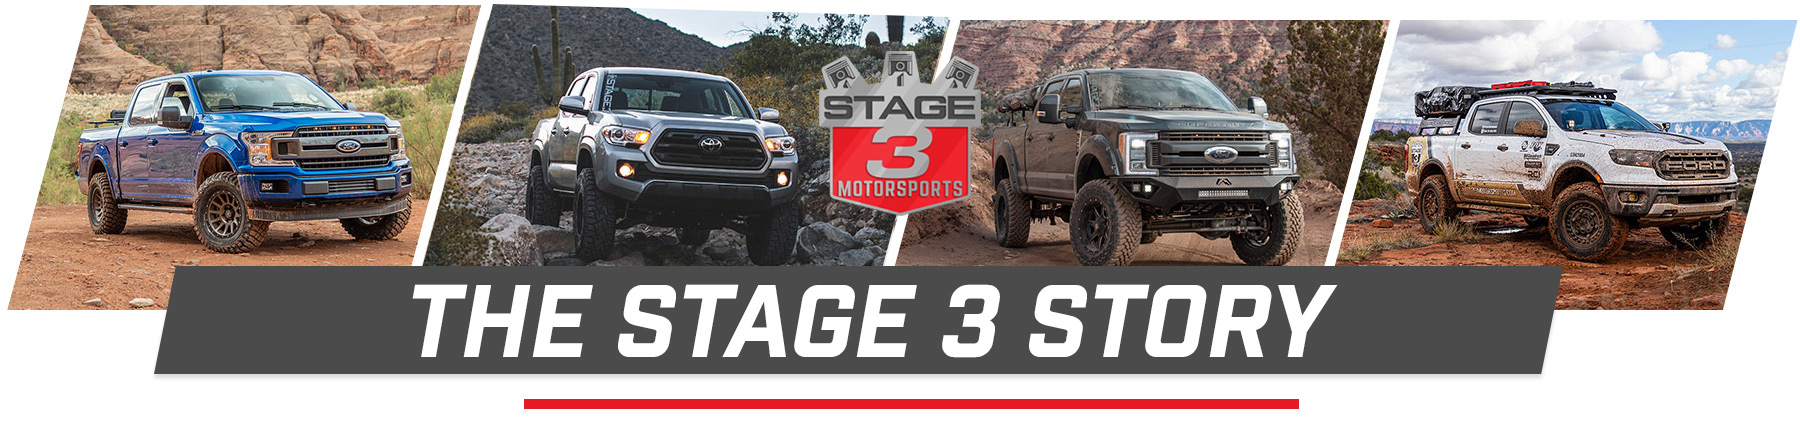 About Stage 3 Motorsports